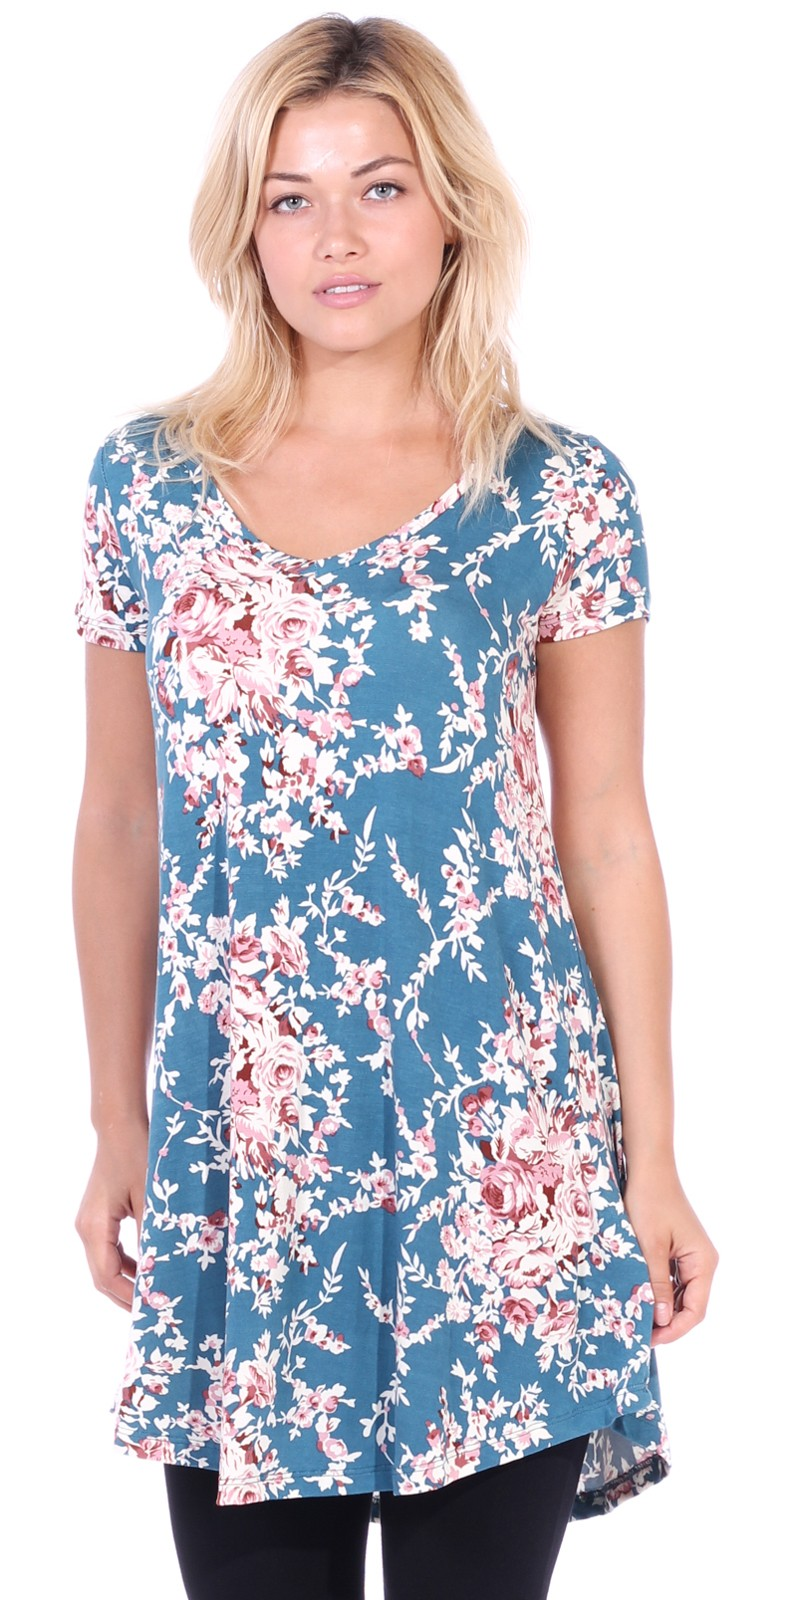 Women's Tunic Top Dress Short Sleeve - Wear With Leggings in Regular and Plus Size - Made In USA - ST60